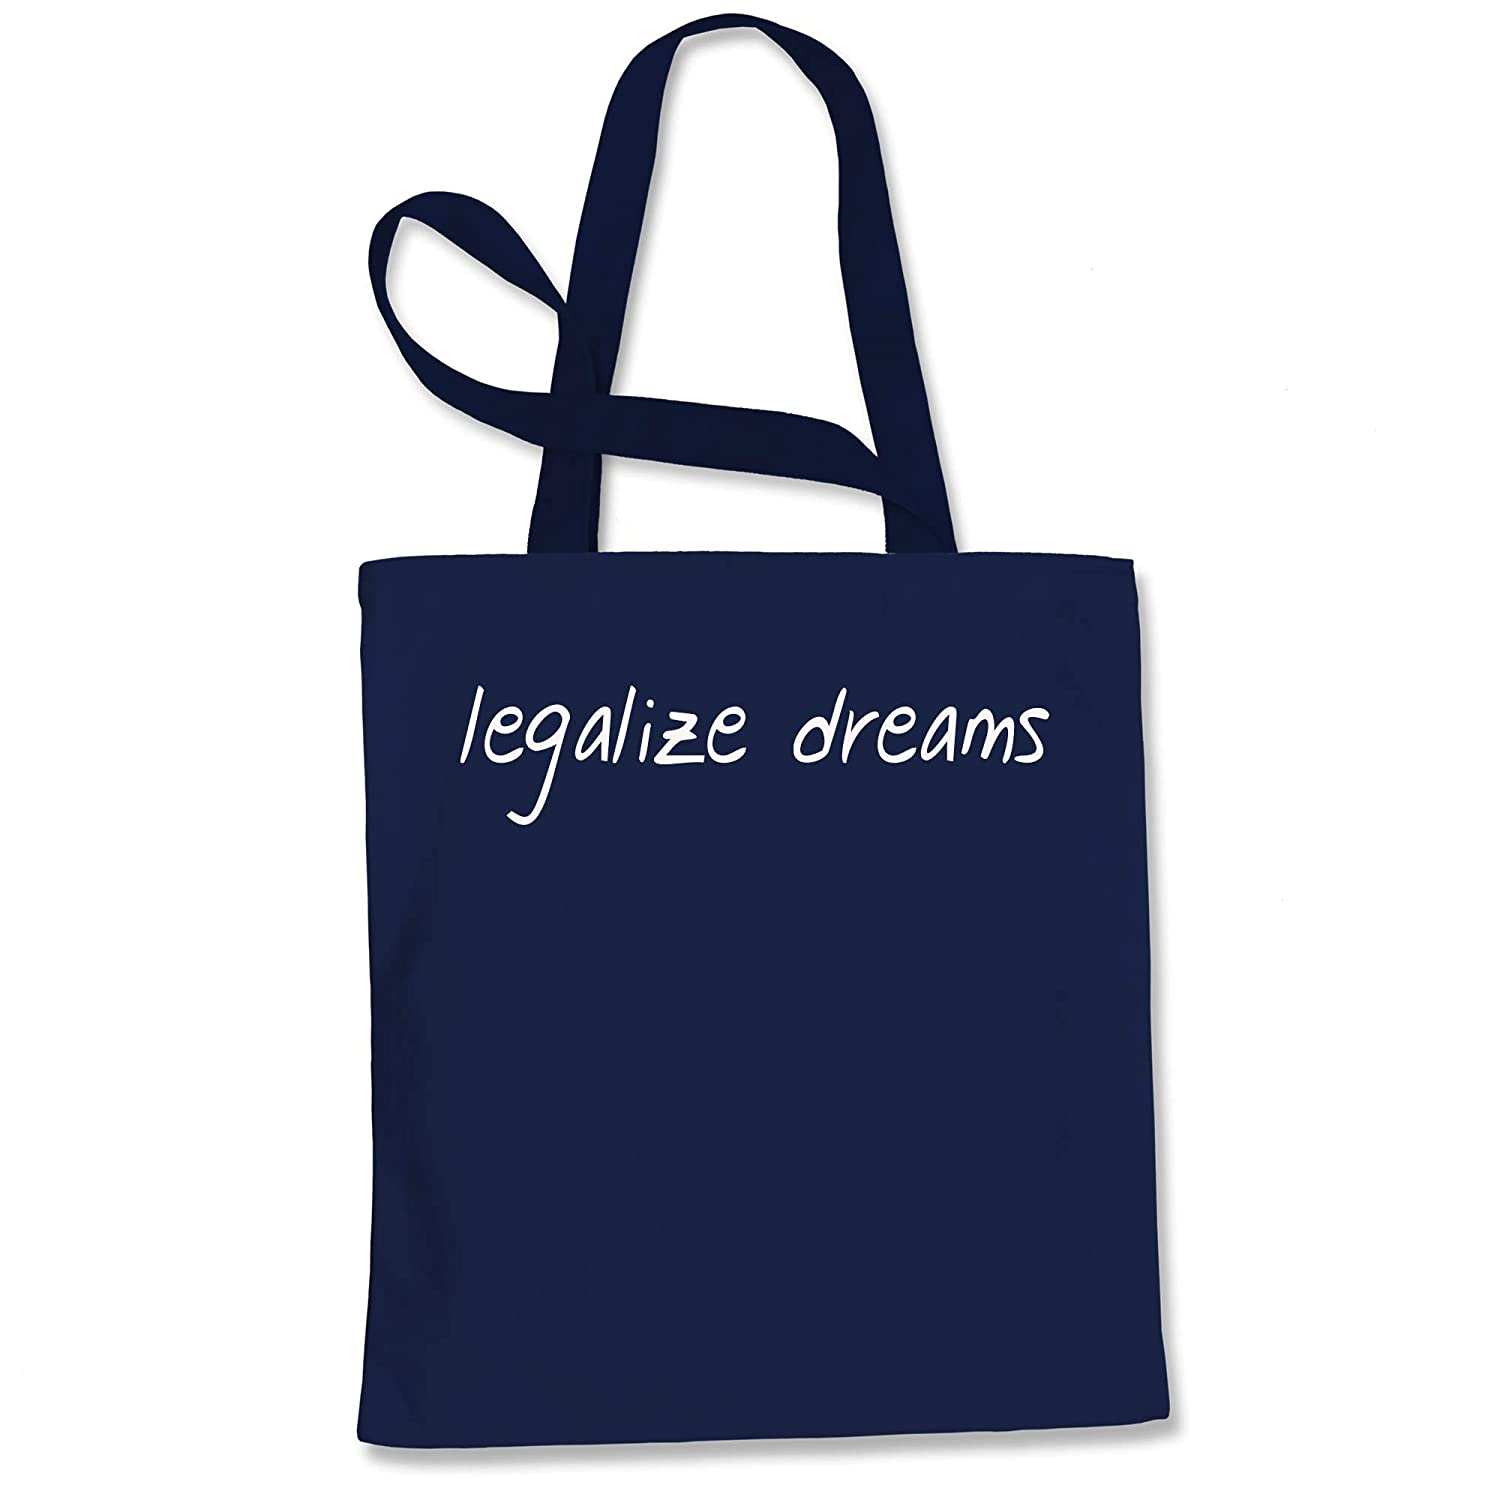 Expression Tees Legalize Dreams Shopping Tote Bag